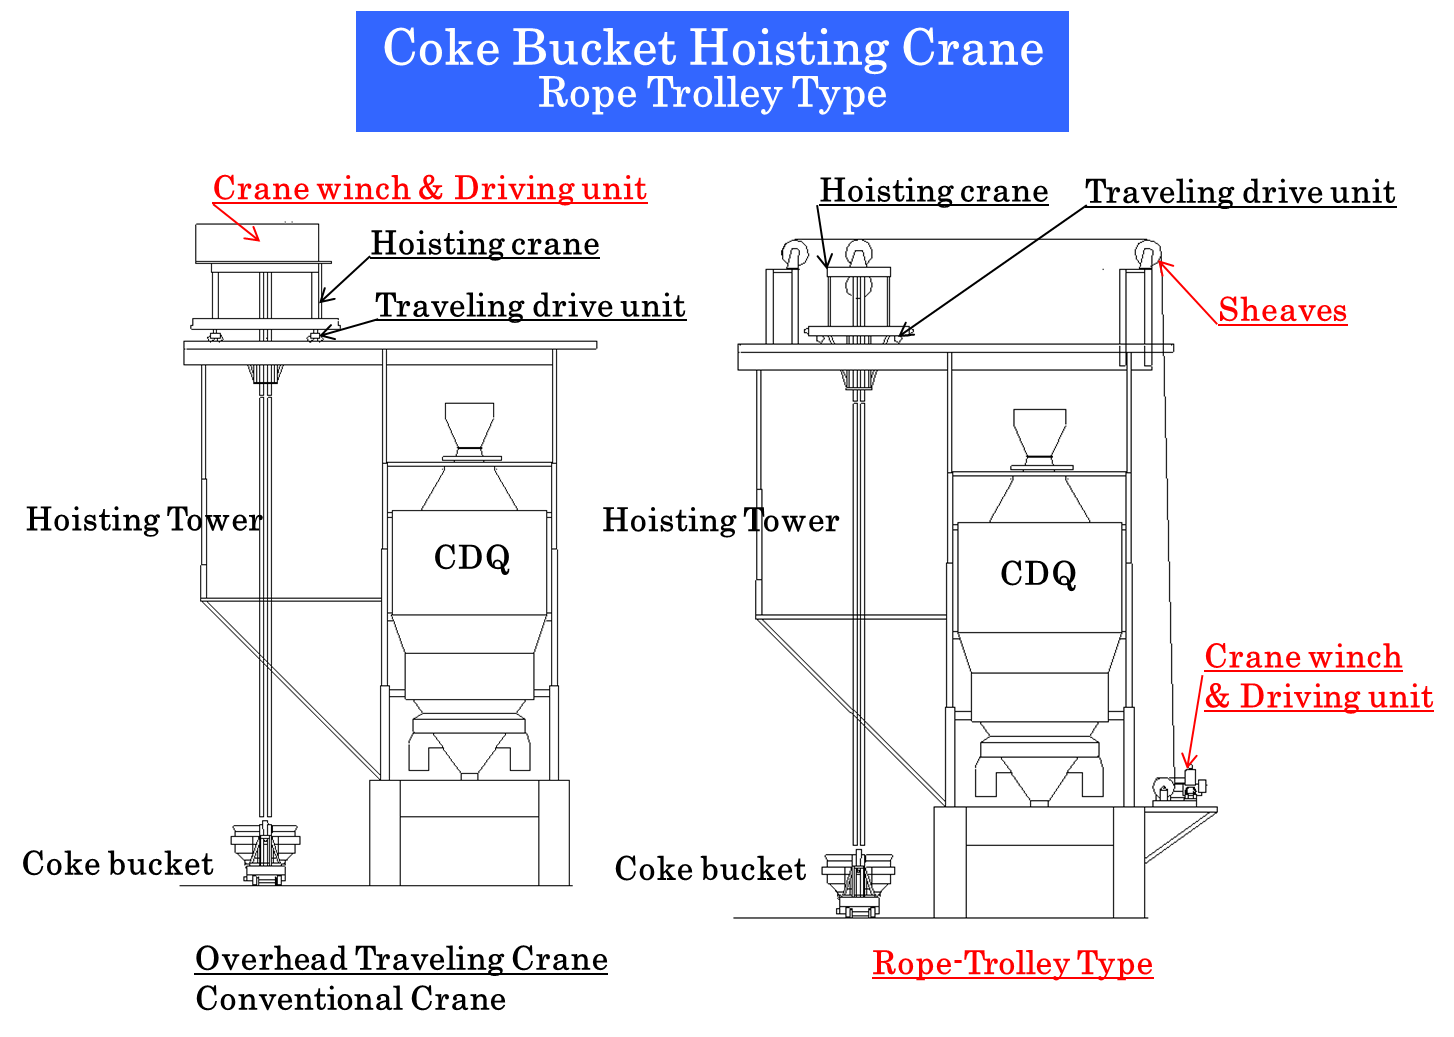 Coke Dry Quenching Cdq Steel Plantech Power Plant Equipment Layout As Our Rope Trolley Type Bucket Hoisting Crane Has Its Winch On The Position Near Ground Level Weight Of Upper Part A Structure Can